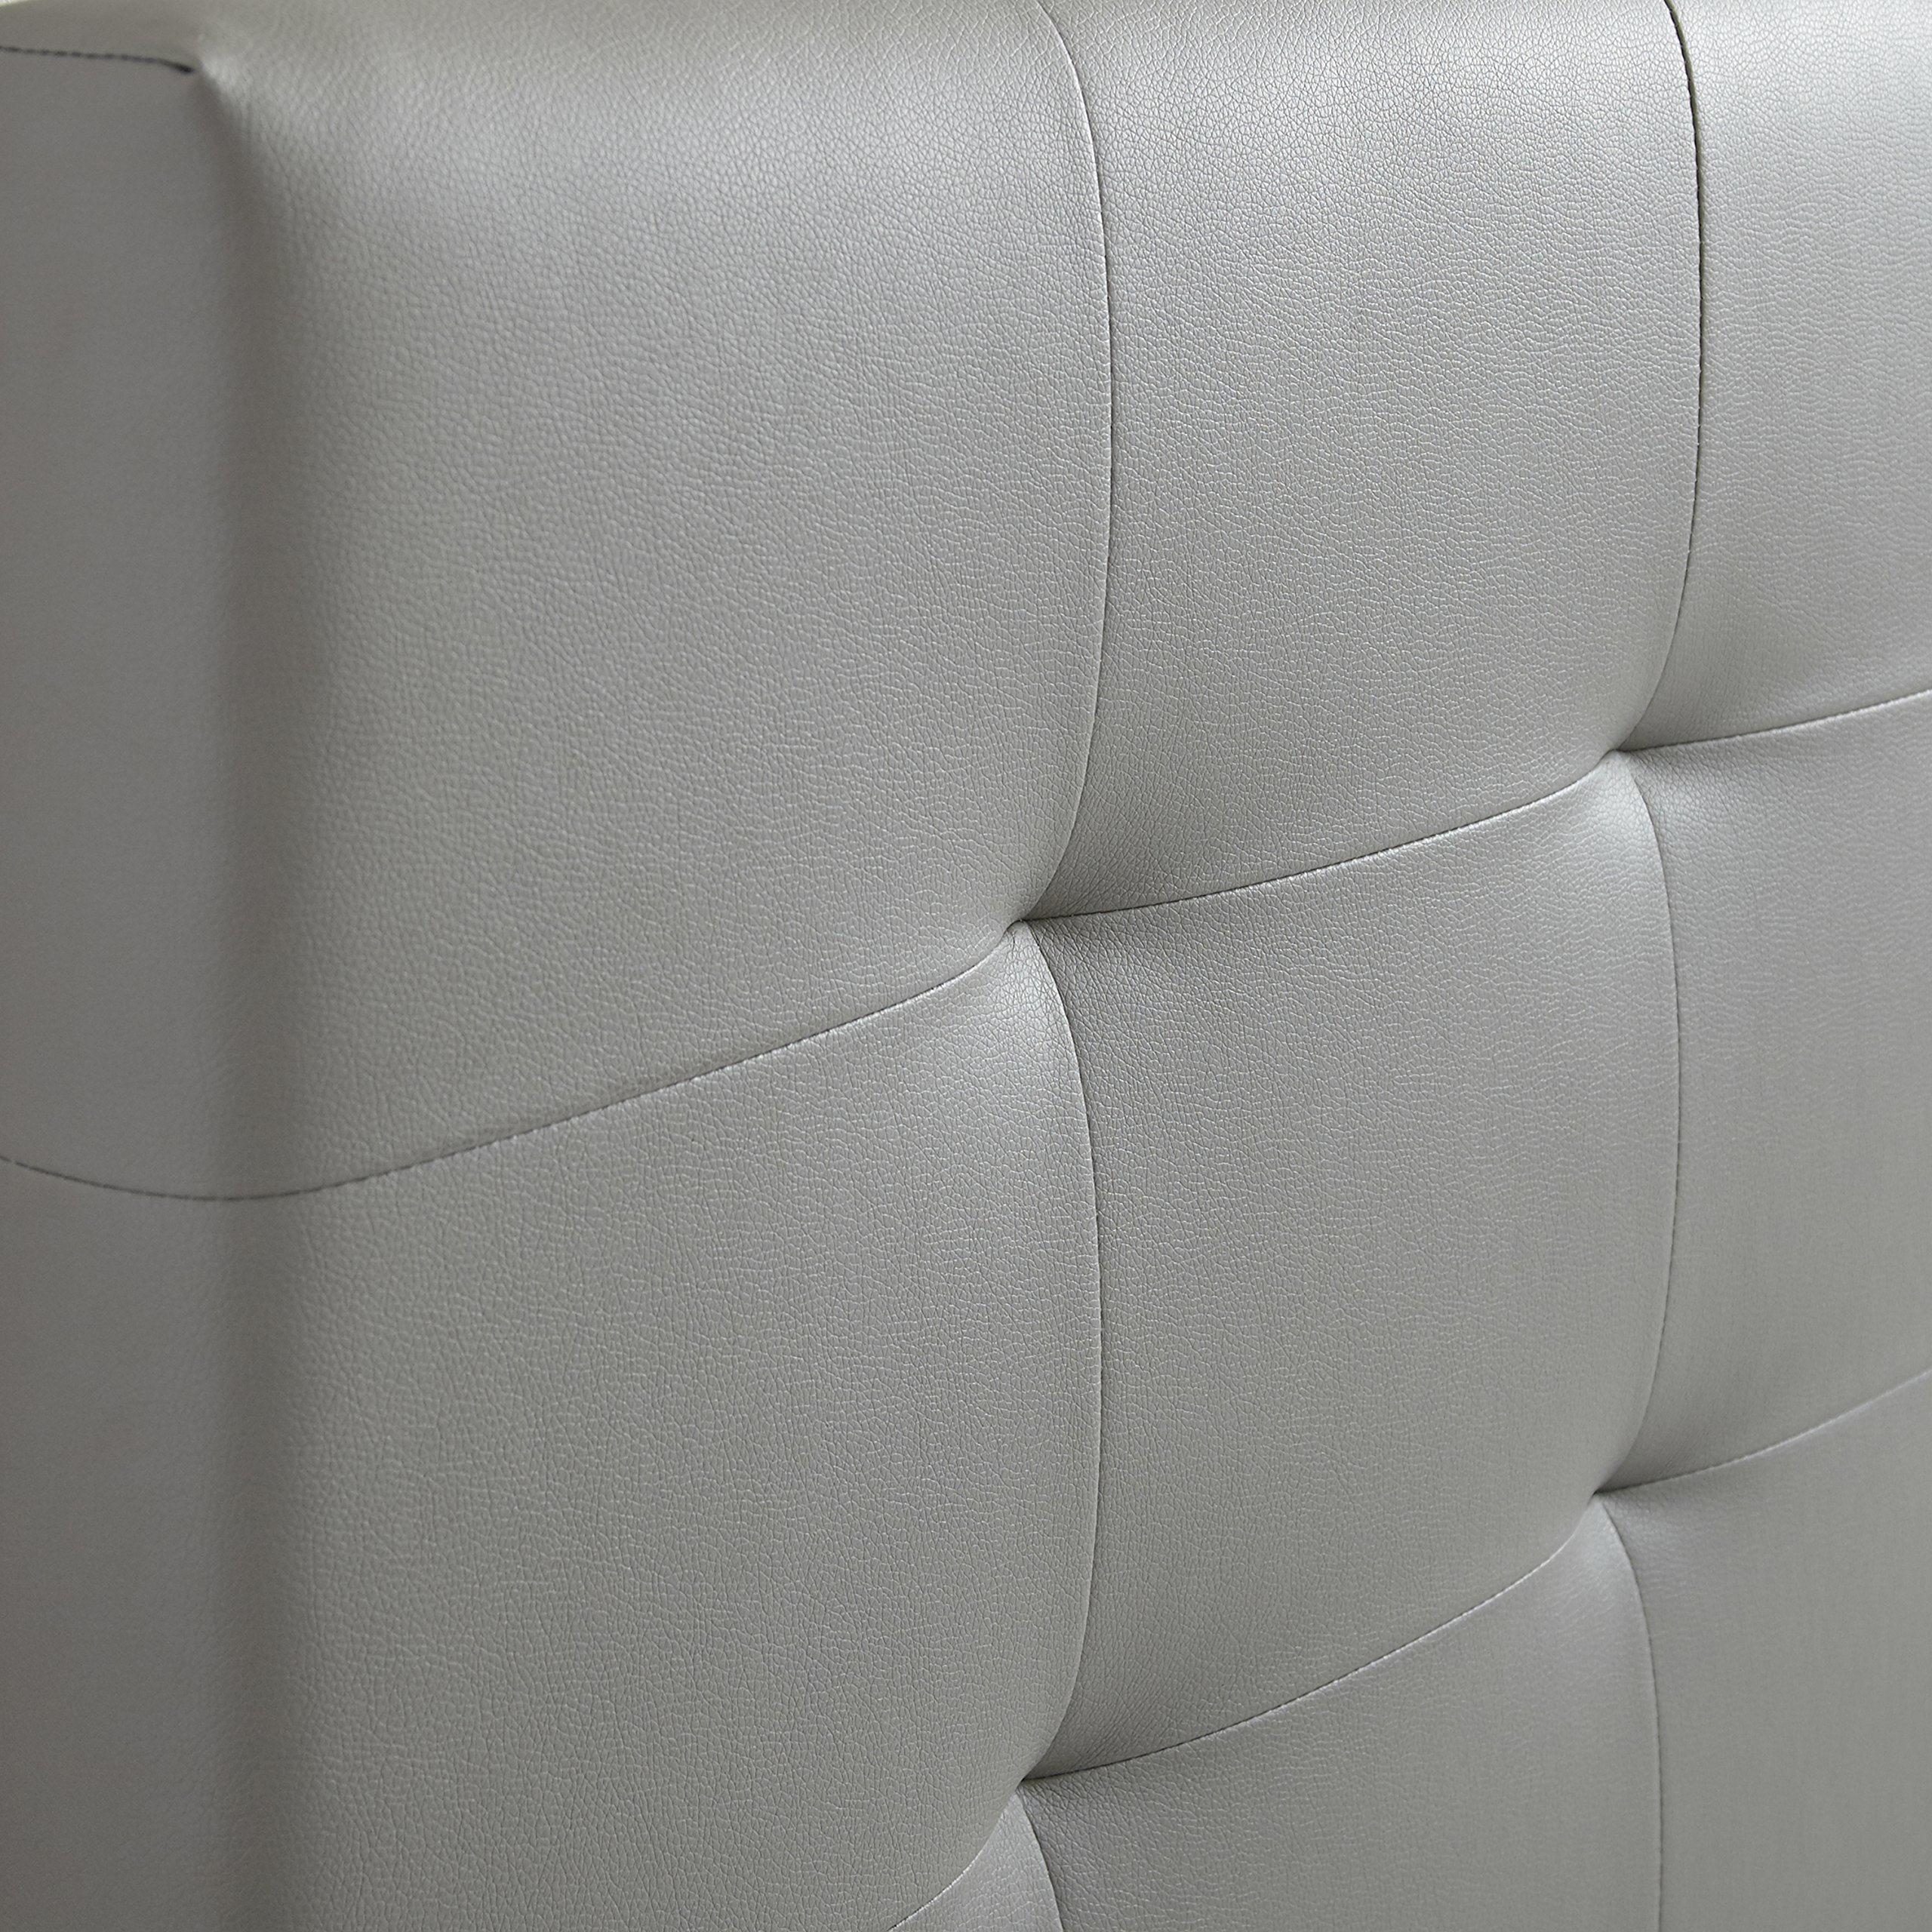 Flex Form Murphy Upholstered Platform Bed Frame with Tufted Headboard: Faux Leather, Grey, Queen by Flex Form (Image #3)